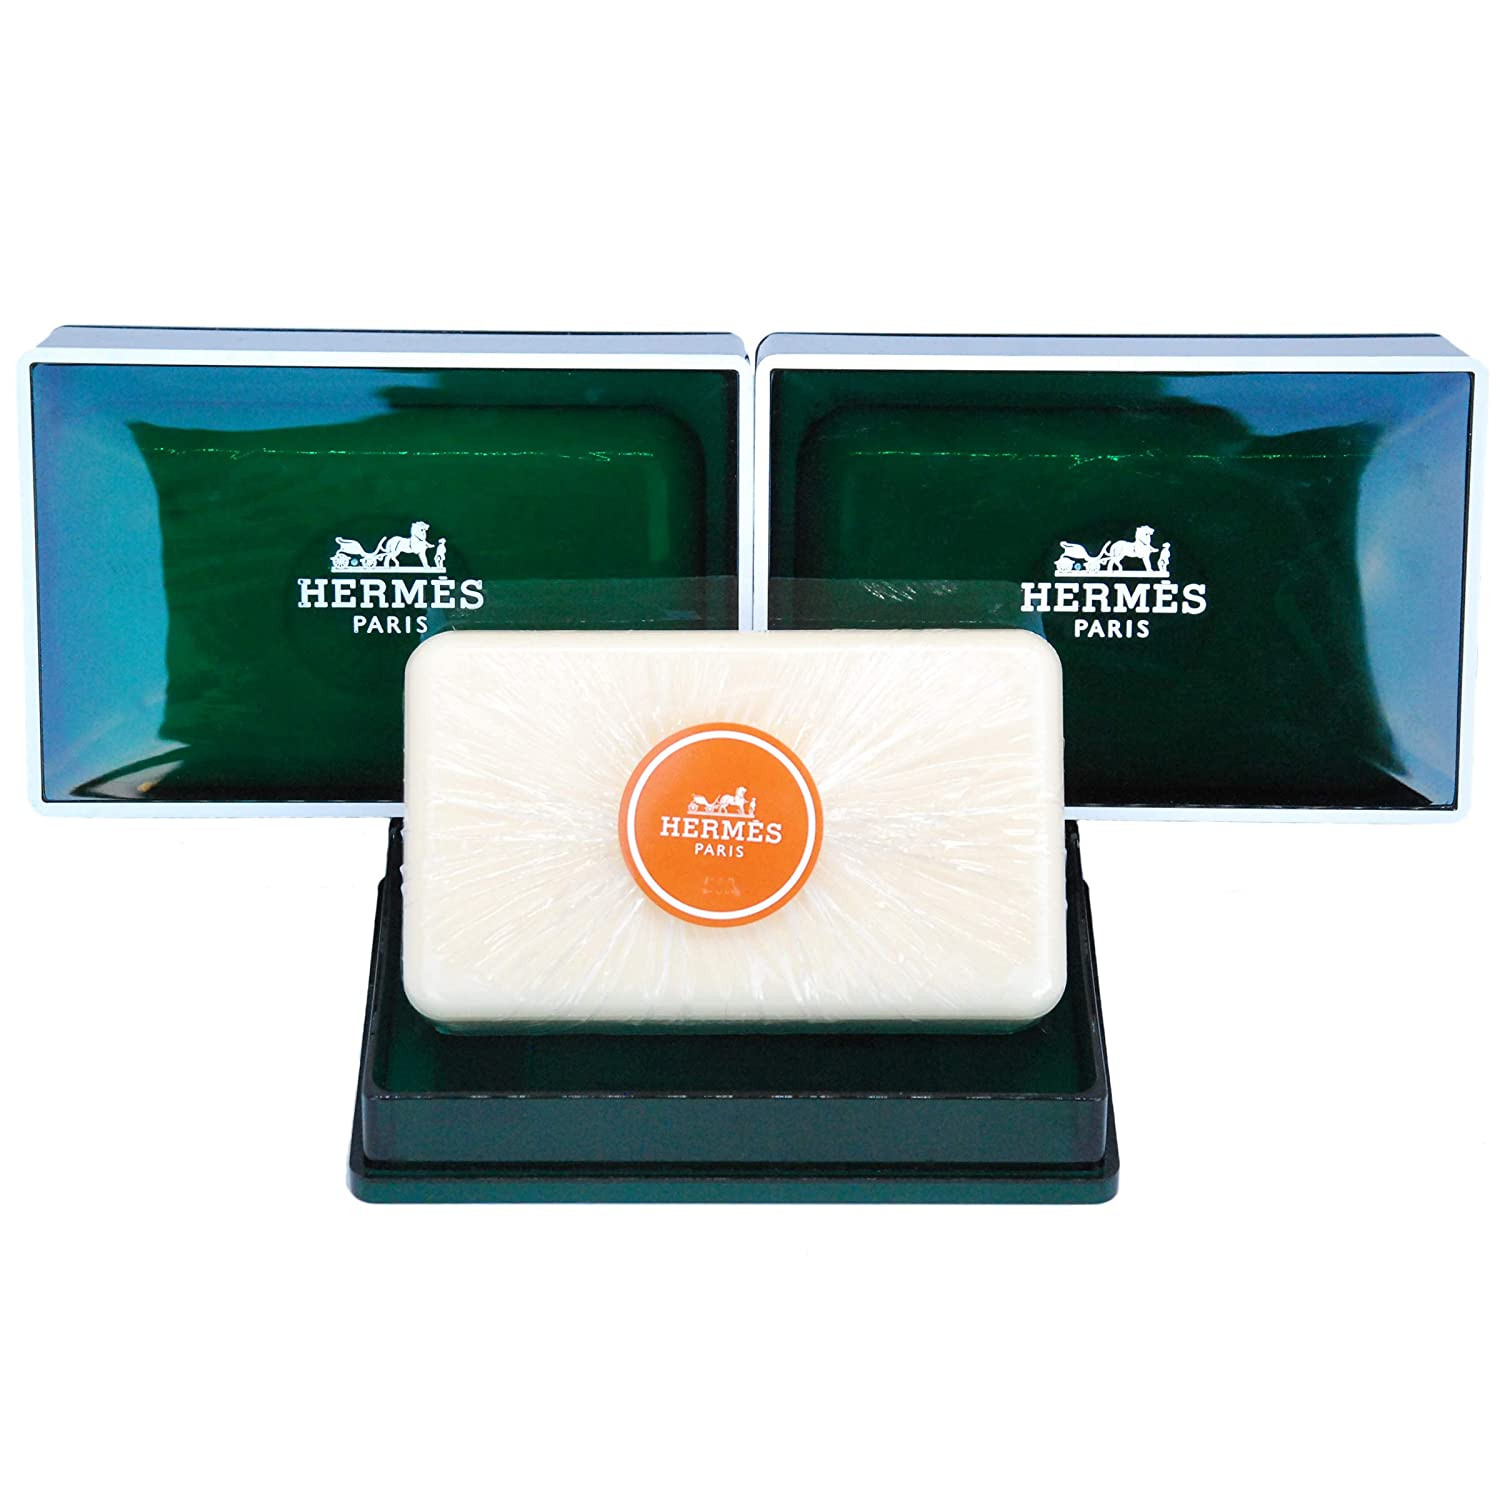 Soaps Luxury Imported From Paris Verte Gift Eau D'orange Perfumed Hermès Jumbo eHbEWD92IY